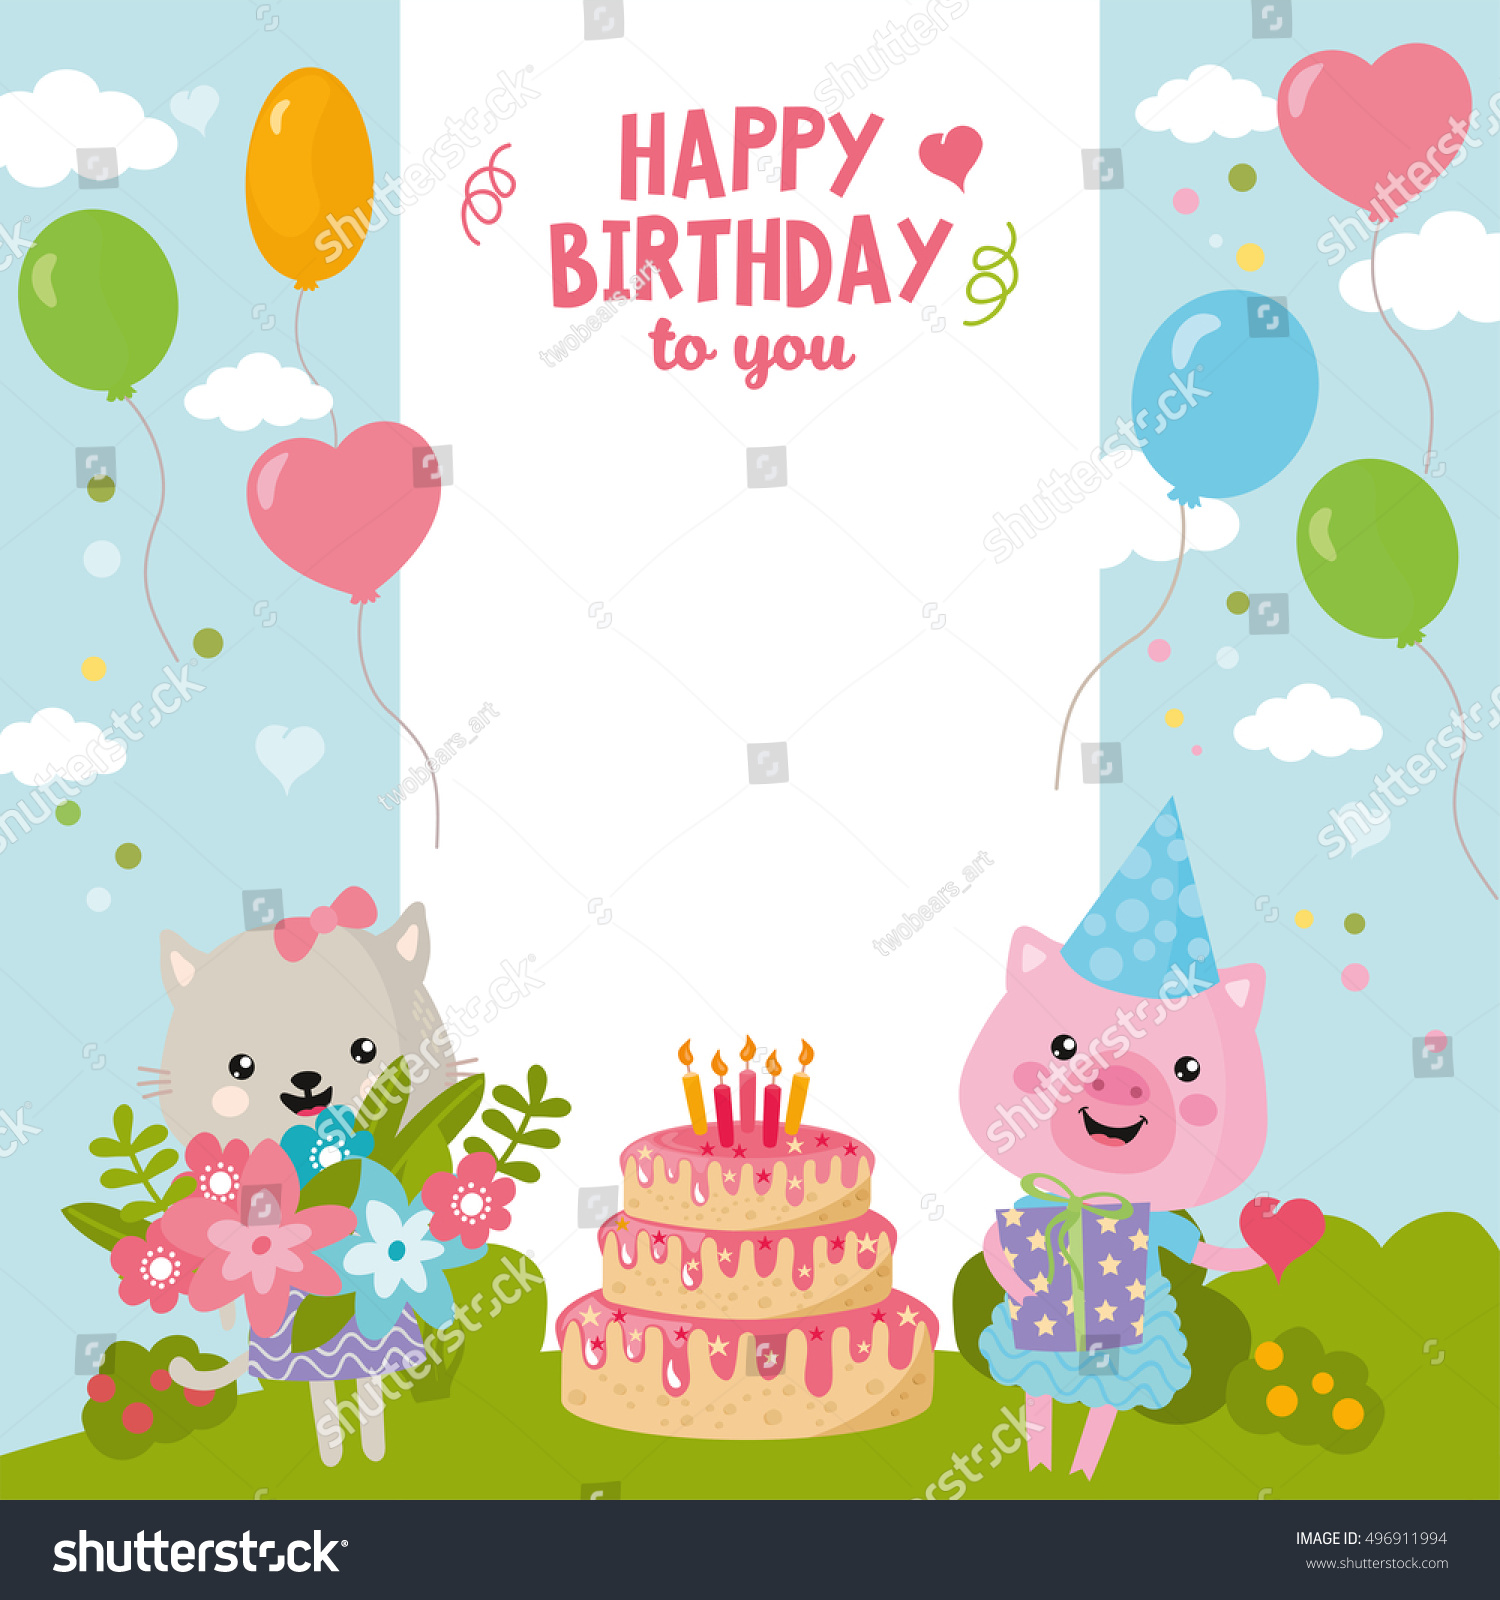 Greeting Card Design Cute Cat Pig Stock Vector (Royalty Free ...